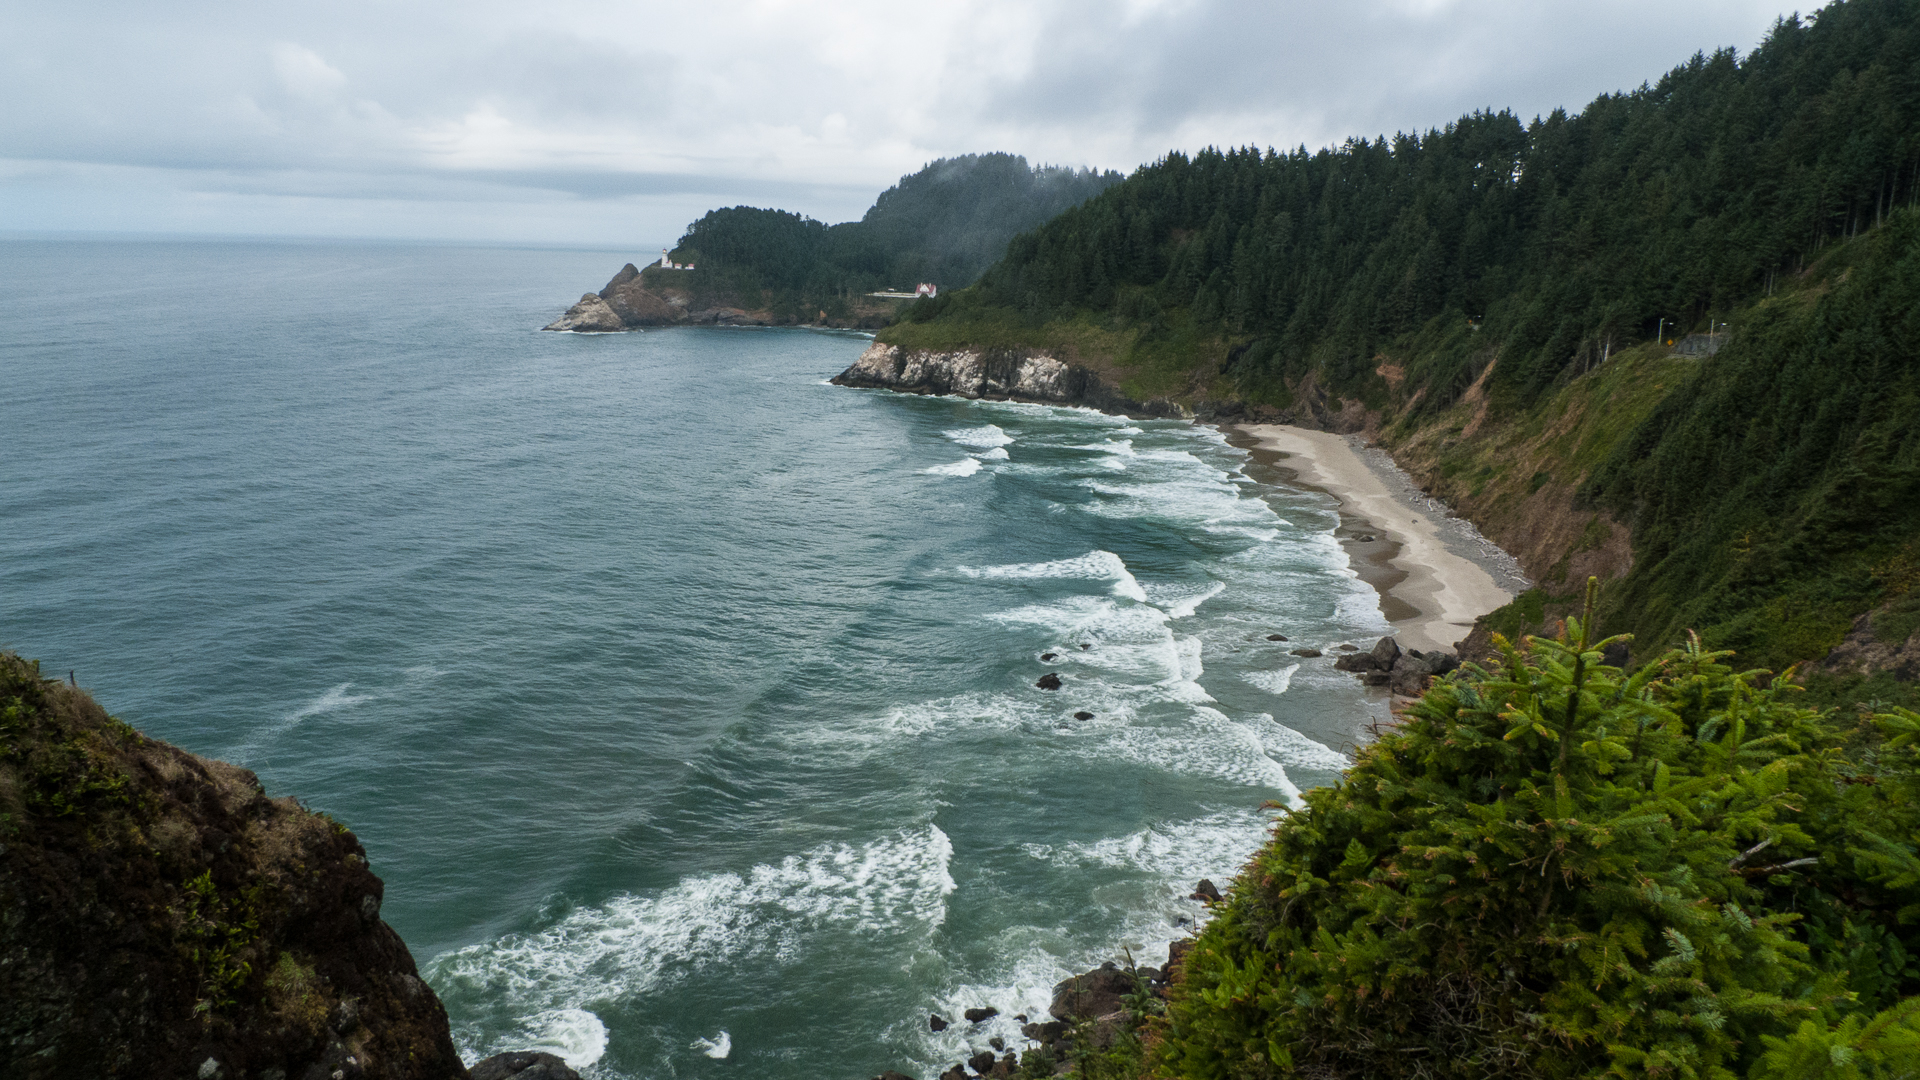 A typical view of the Oregon Coast, complete with lighthouse.